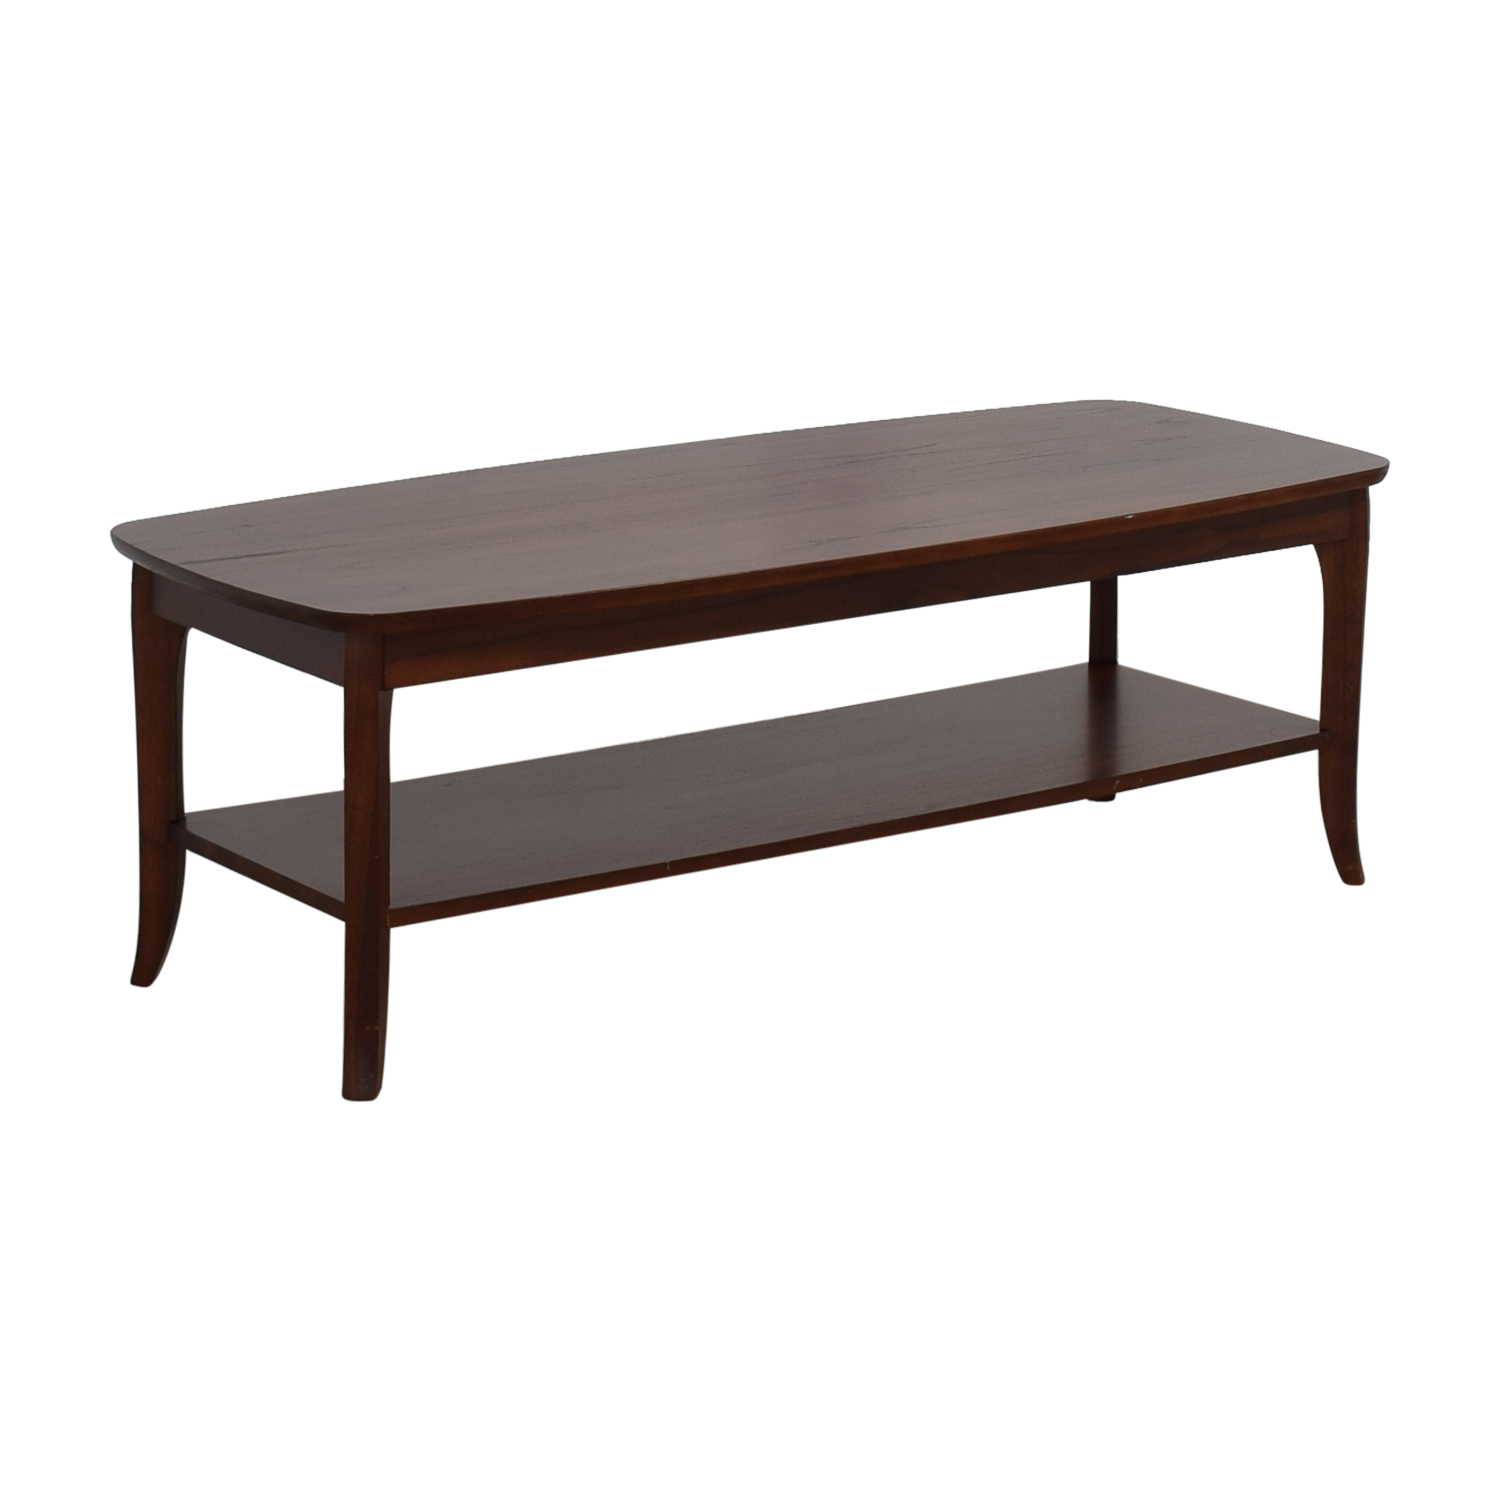 52% OFF   Pottery Barn Pottery Barn Chloe Wood Coffee Table / Tables